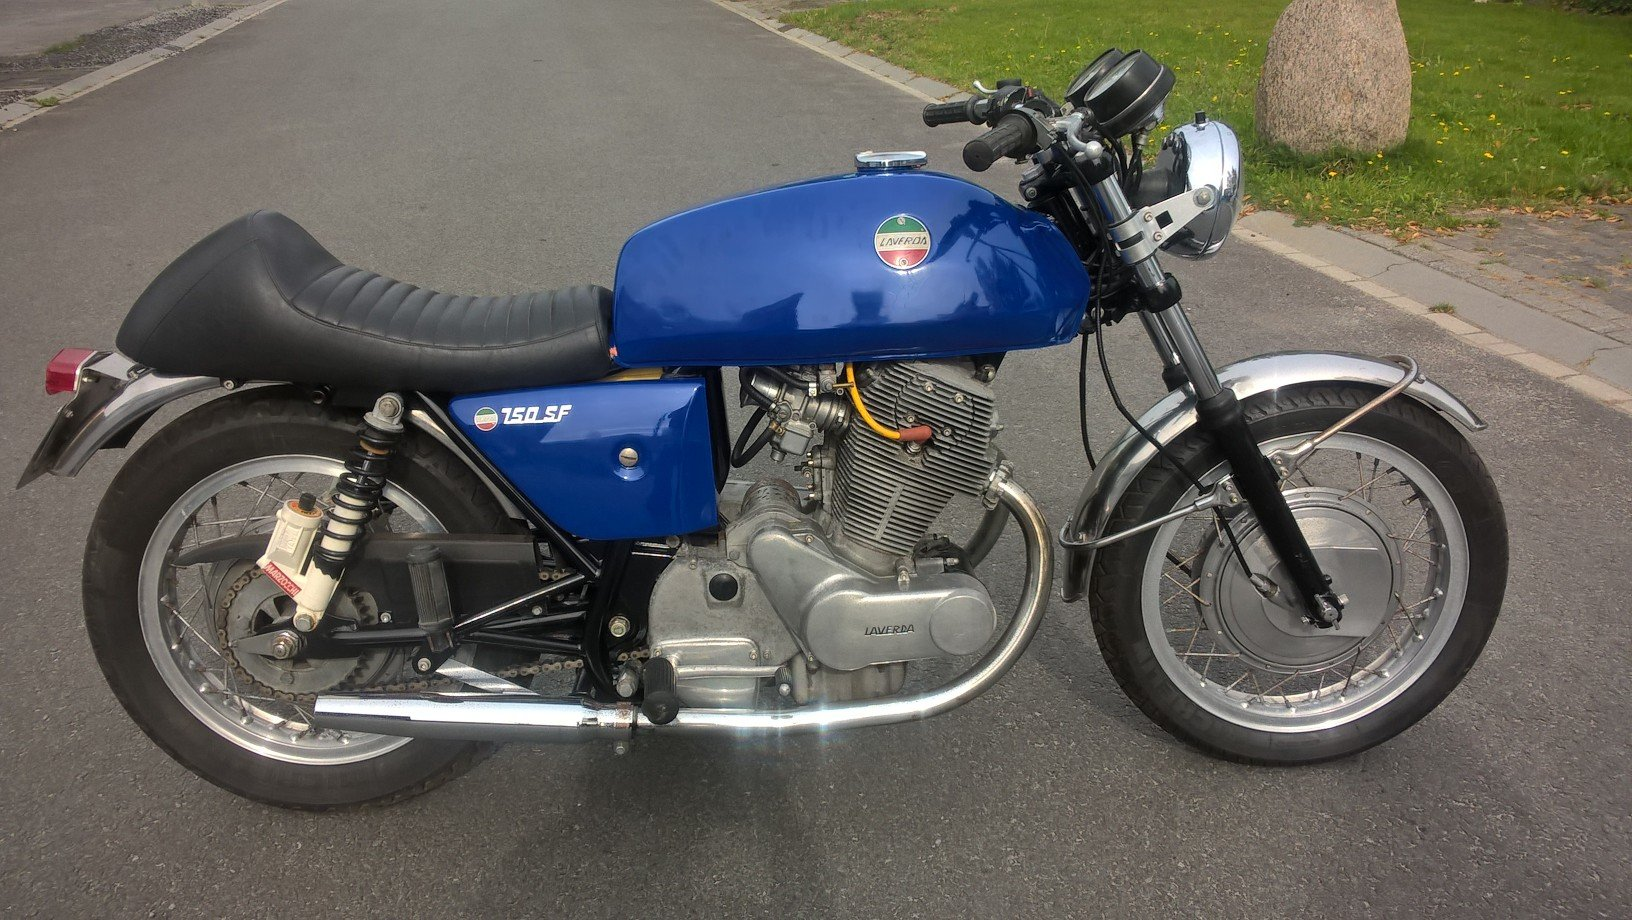 1971 Laverda 750 SF drumbrake type For Sale (picture 1 of 6)